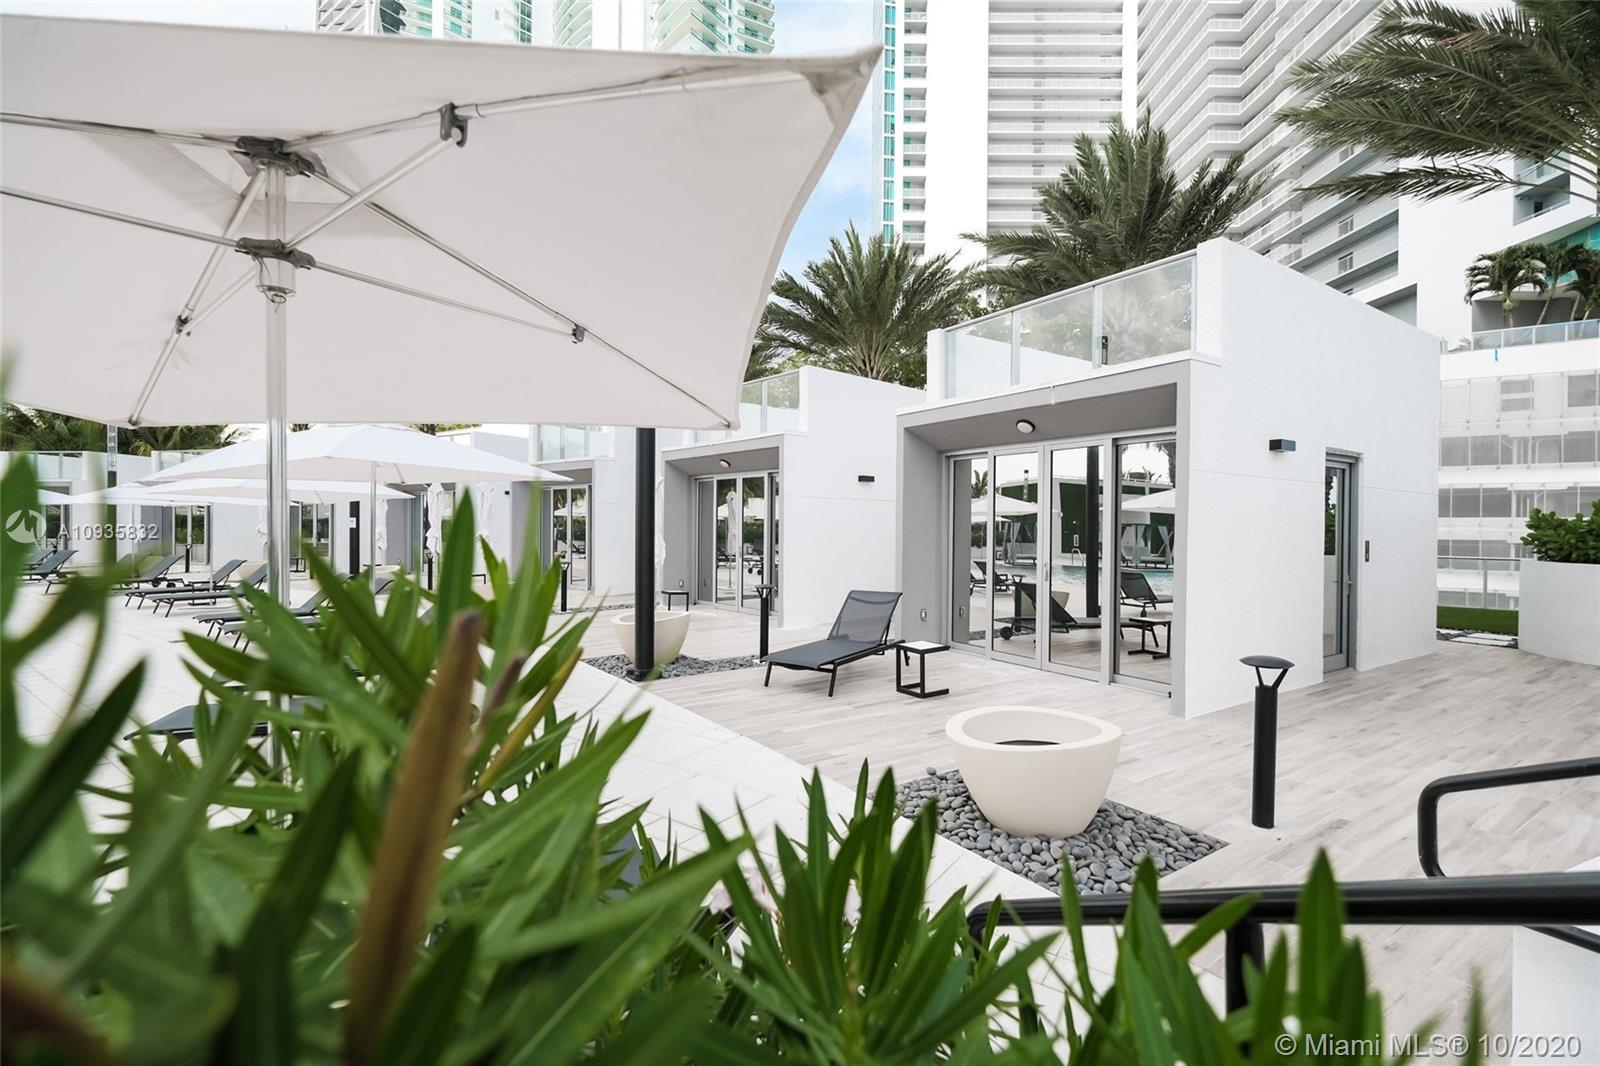 Privately-Owned Pool Cabana situated on the 7th-Level Pool Deck at Paramount Miami Worldcenter in Do